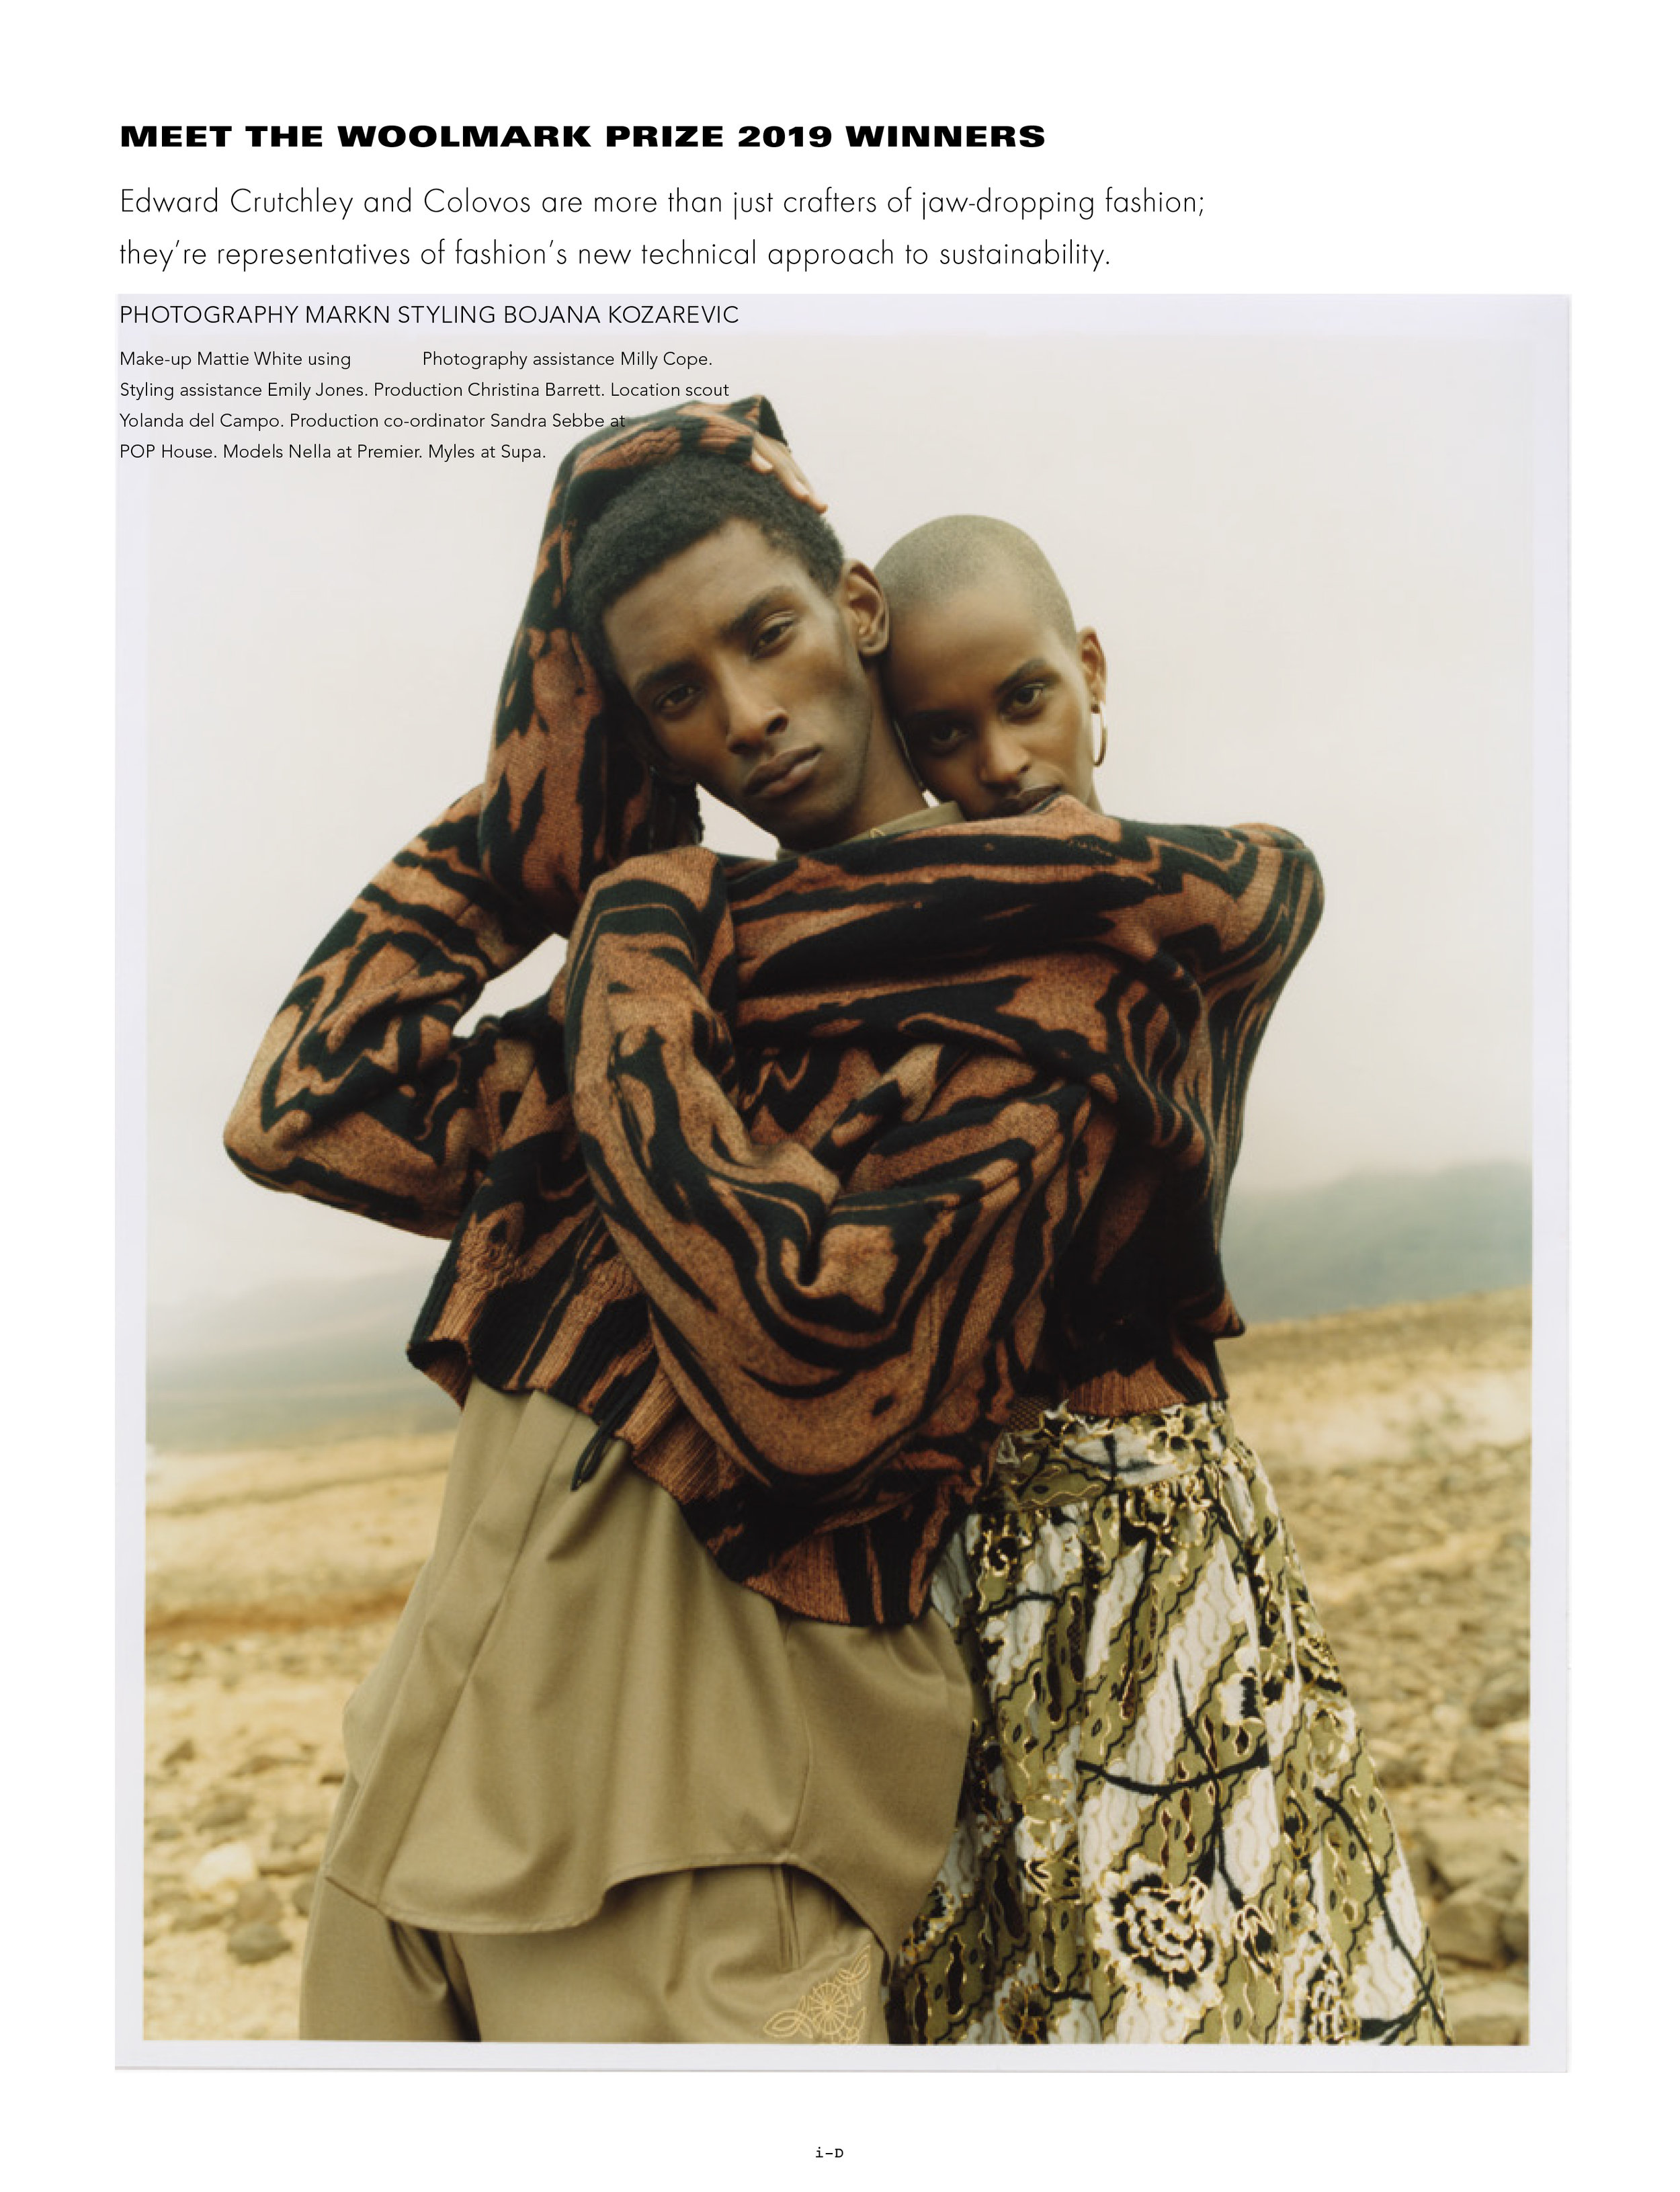 Nella and Myles   for   i-D 356. Summer 19    Photography by     Markn     Styling by   Bojana Kozarevic   Make Up by   Mattie White   Casting by   Irene Manicone